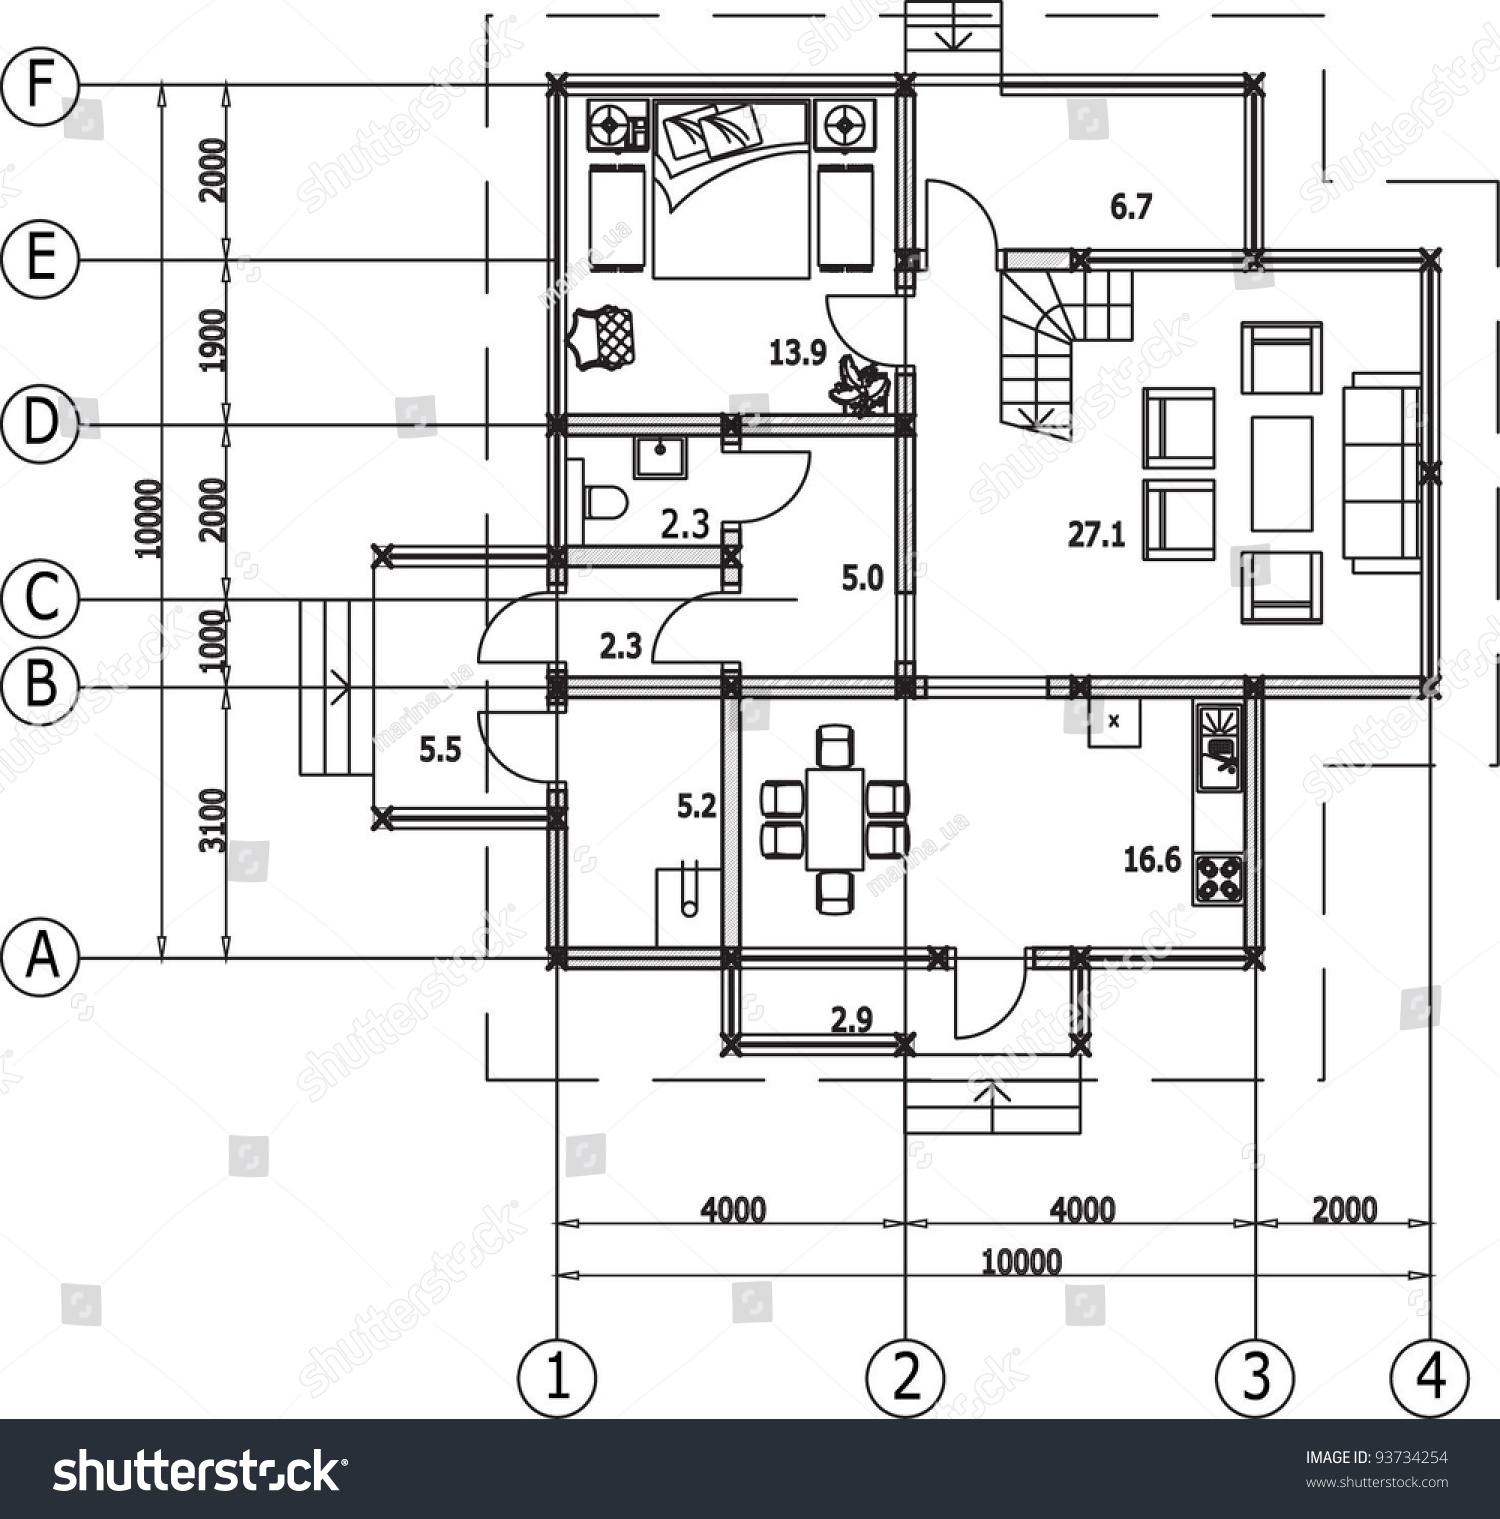 Architectural drawing house autocad vector stock vector for Home architecture cad